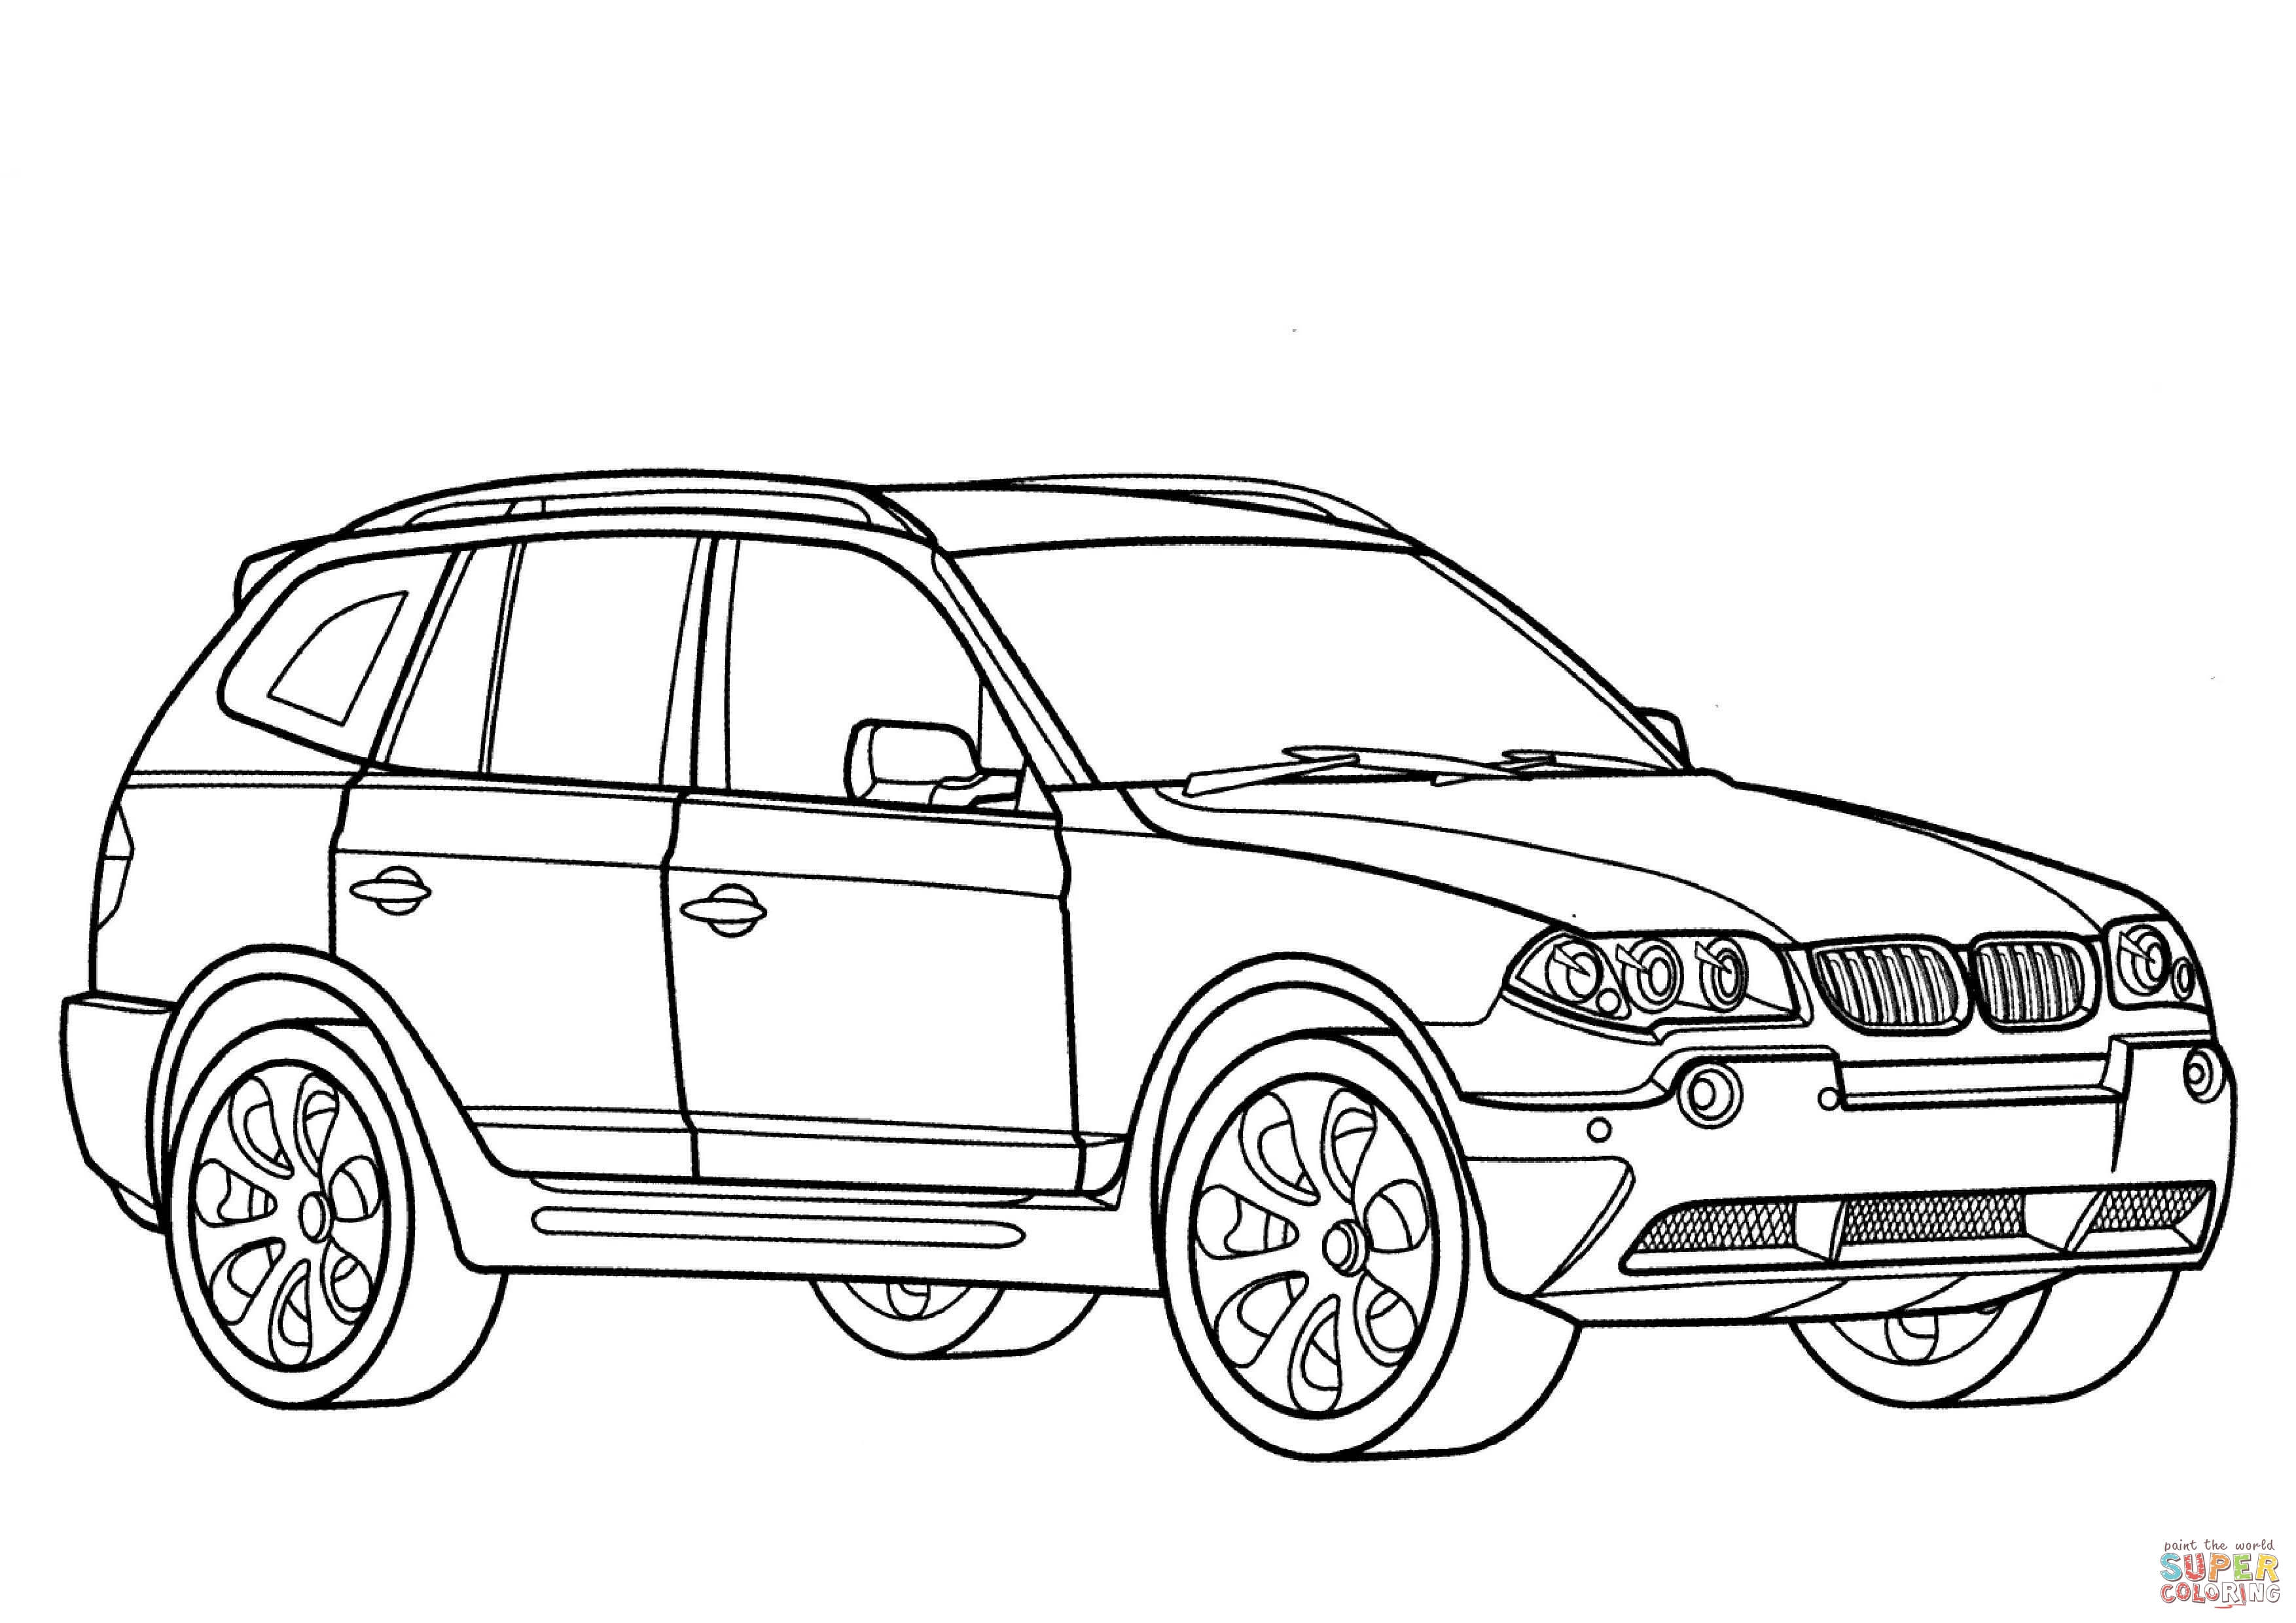 coloring cars bmw bmw coloring pages to download and print for free coloring cars bmw